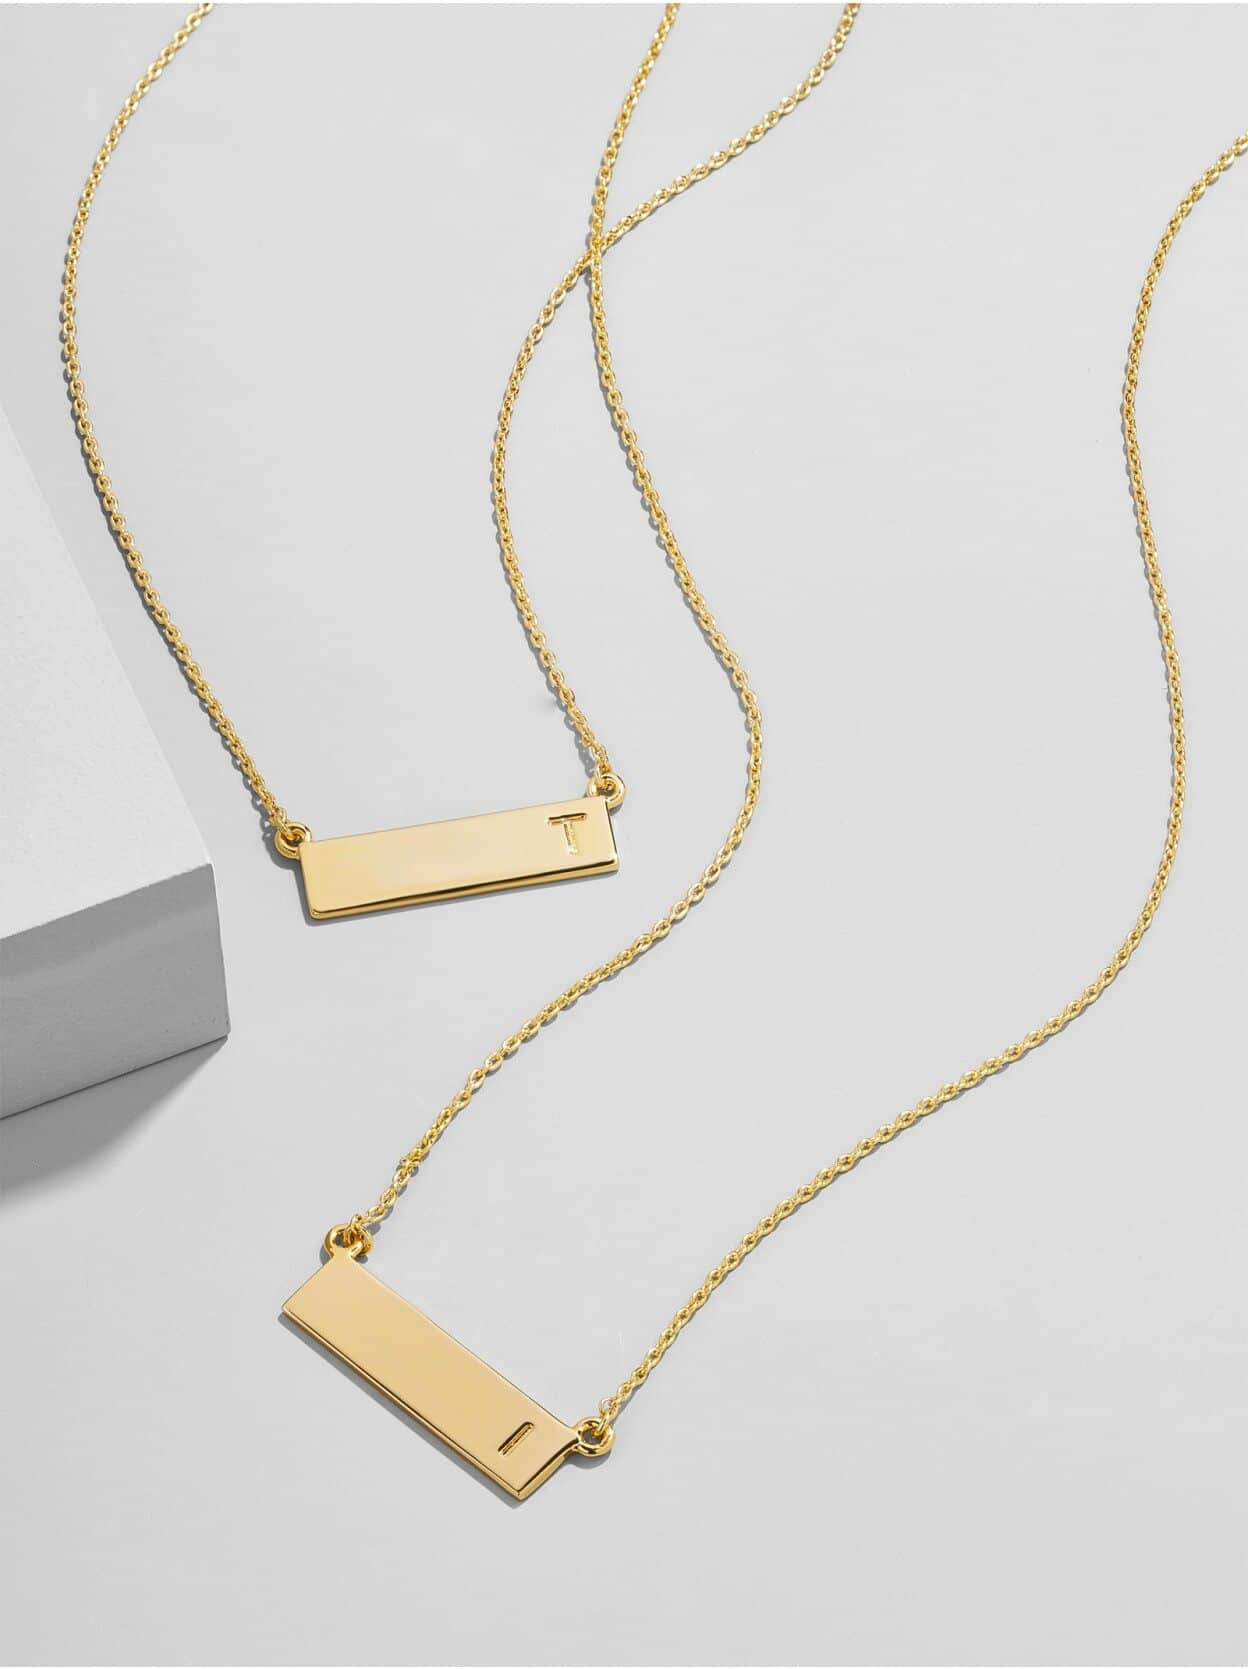 Solid Gold-Colored Bar Pendant